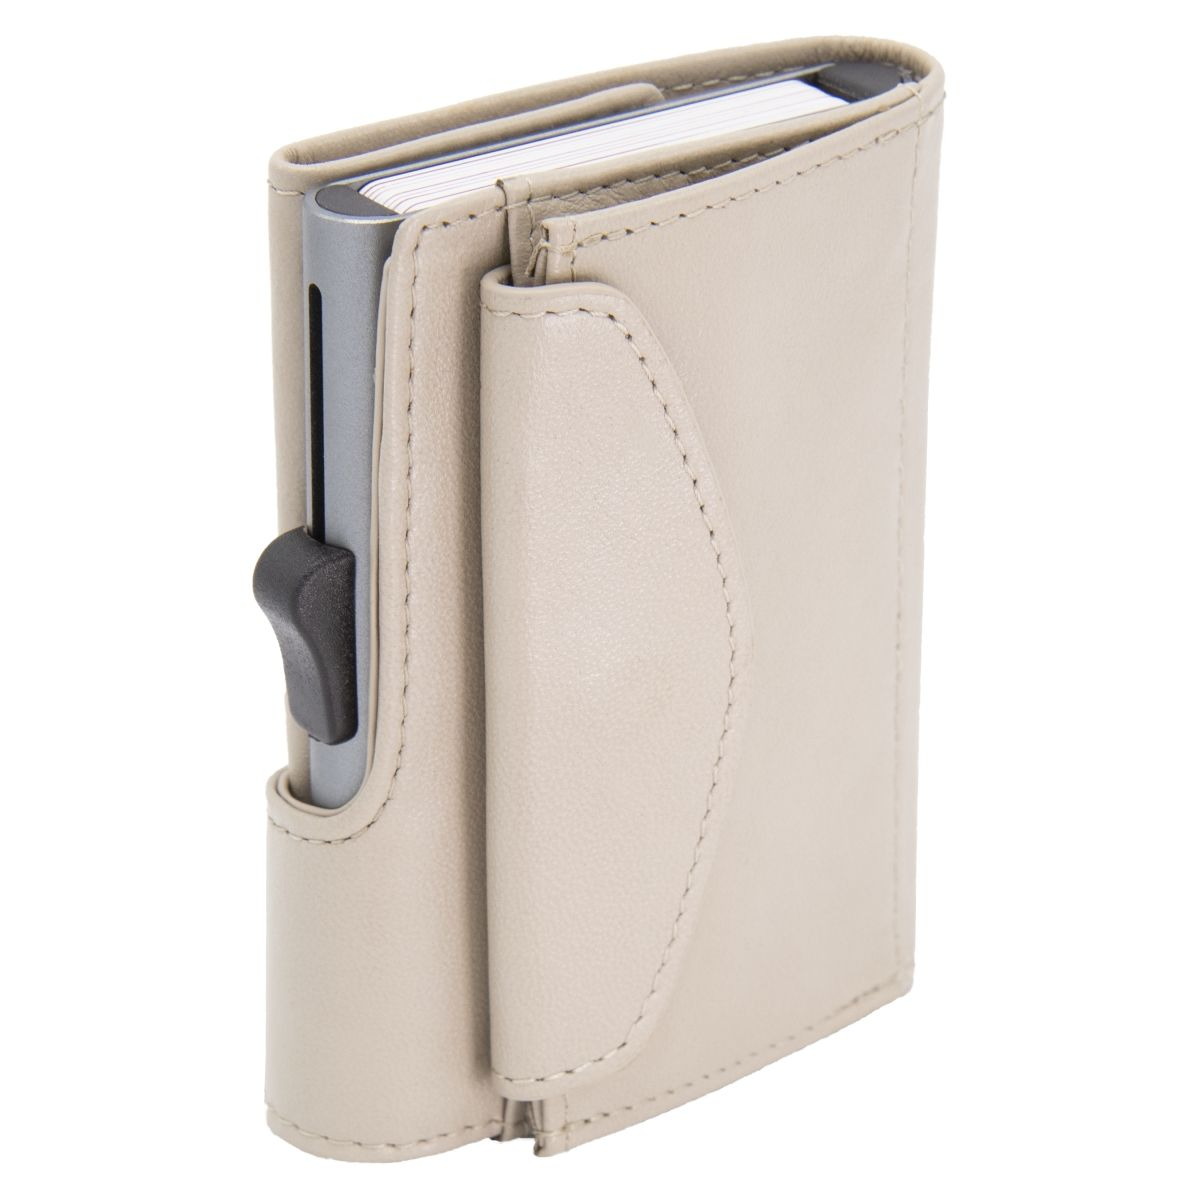 C-Secure XL Aluminum Wallet with Genuine Leather and Coins Pocket - Off White